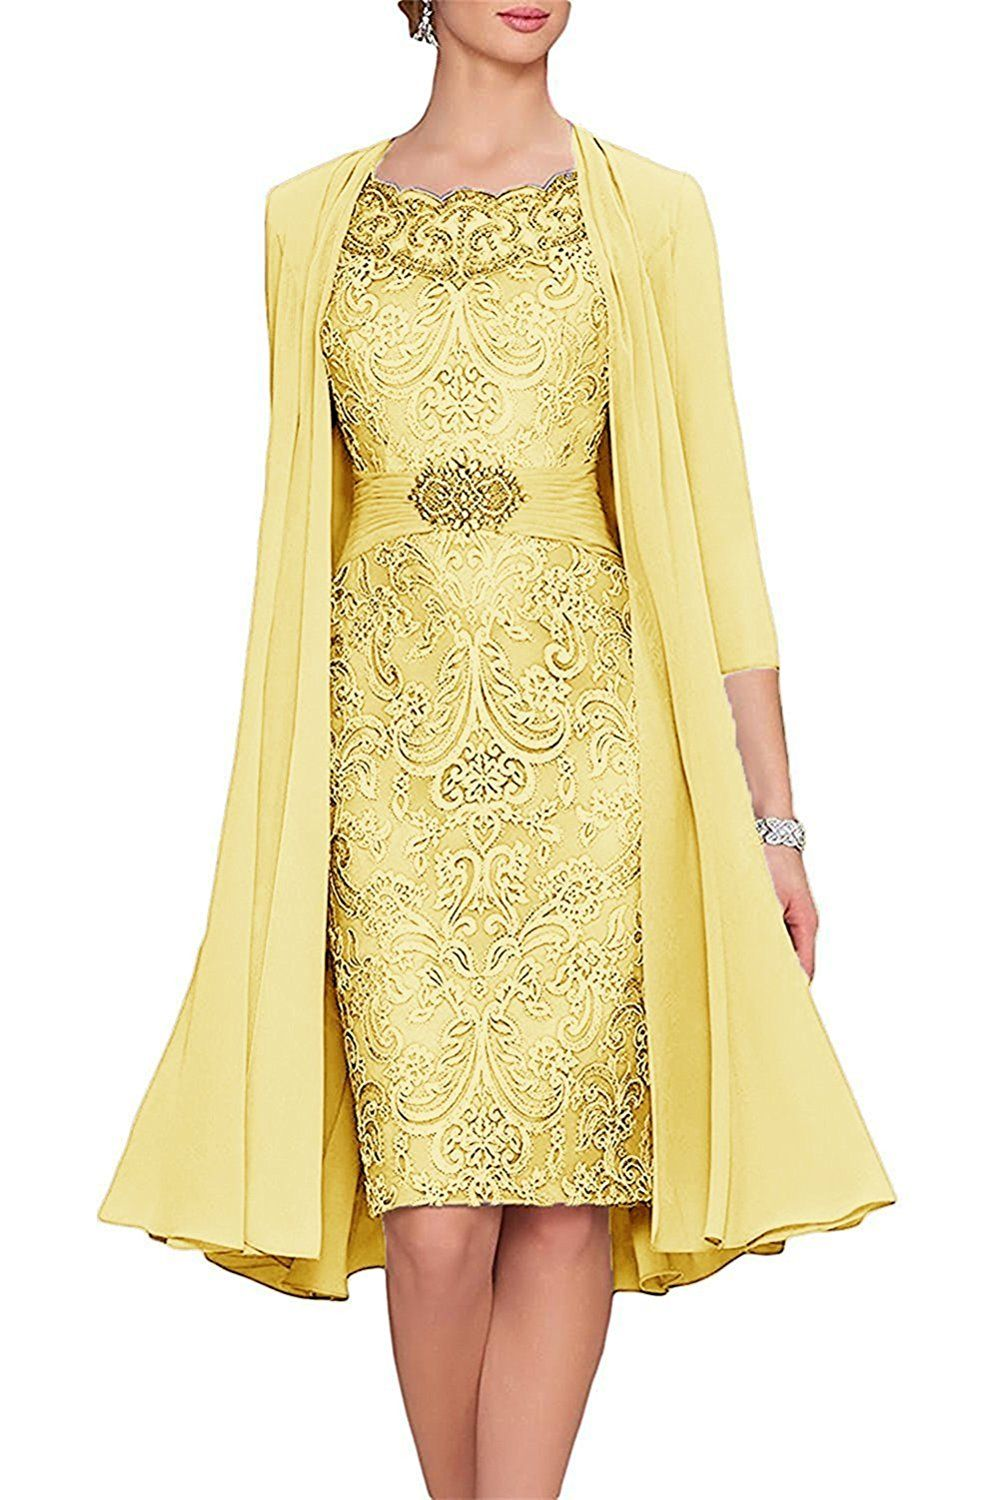 Apxpf Women 39 S Tea Length Mother Of The Bride Dresses Two Pieces With Jacket Aqua Us2 At Amaz Womens Dresses Mother Of The Bride Dresses Wedding Guest Gowns [ 1500 x 999 Pixel ]